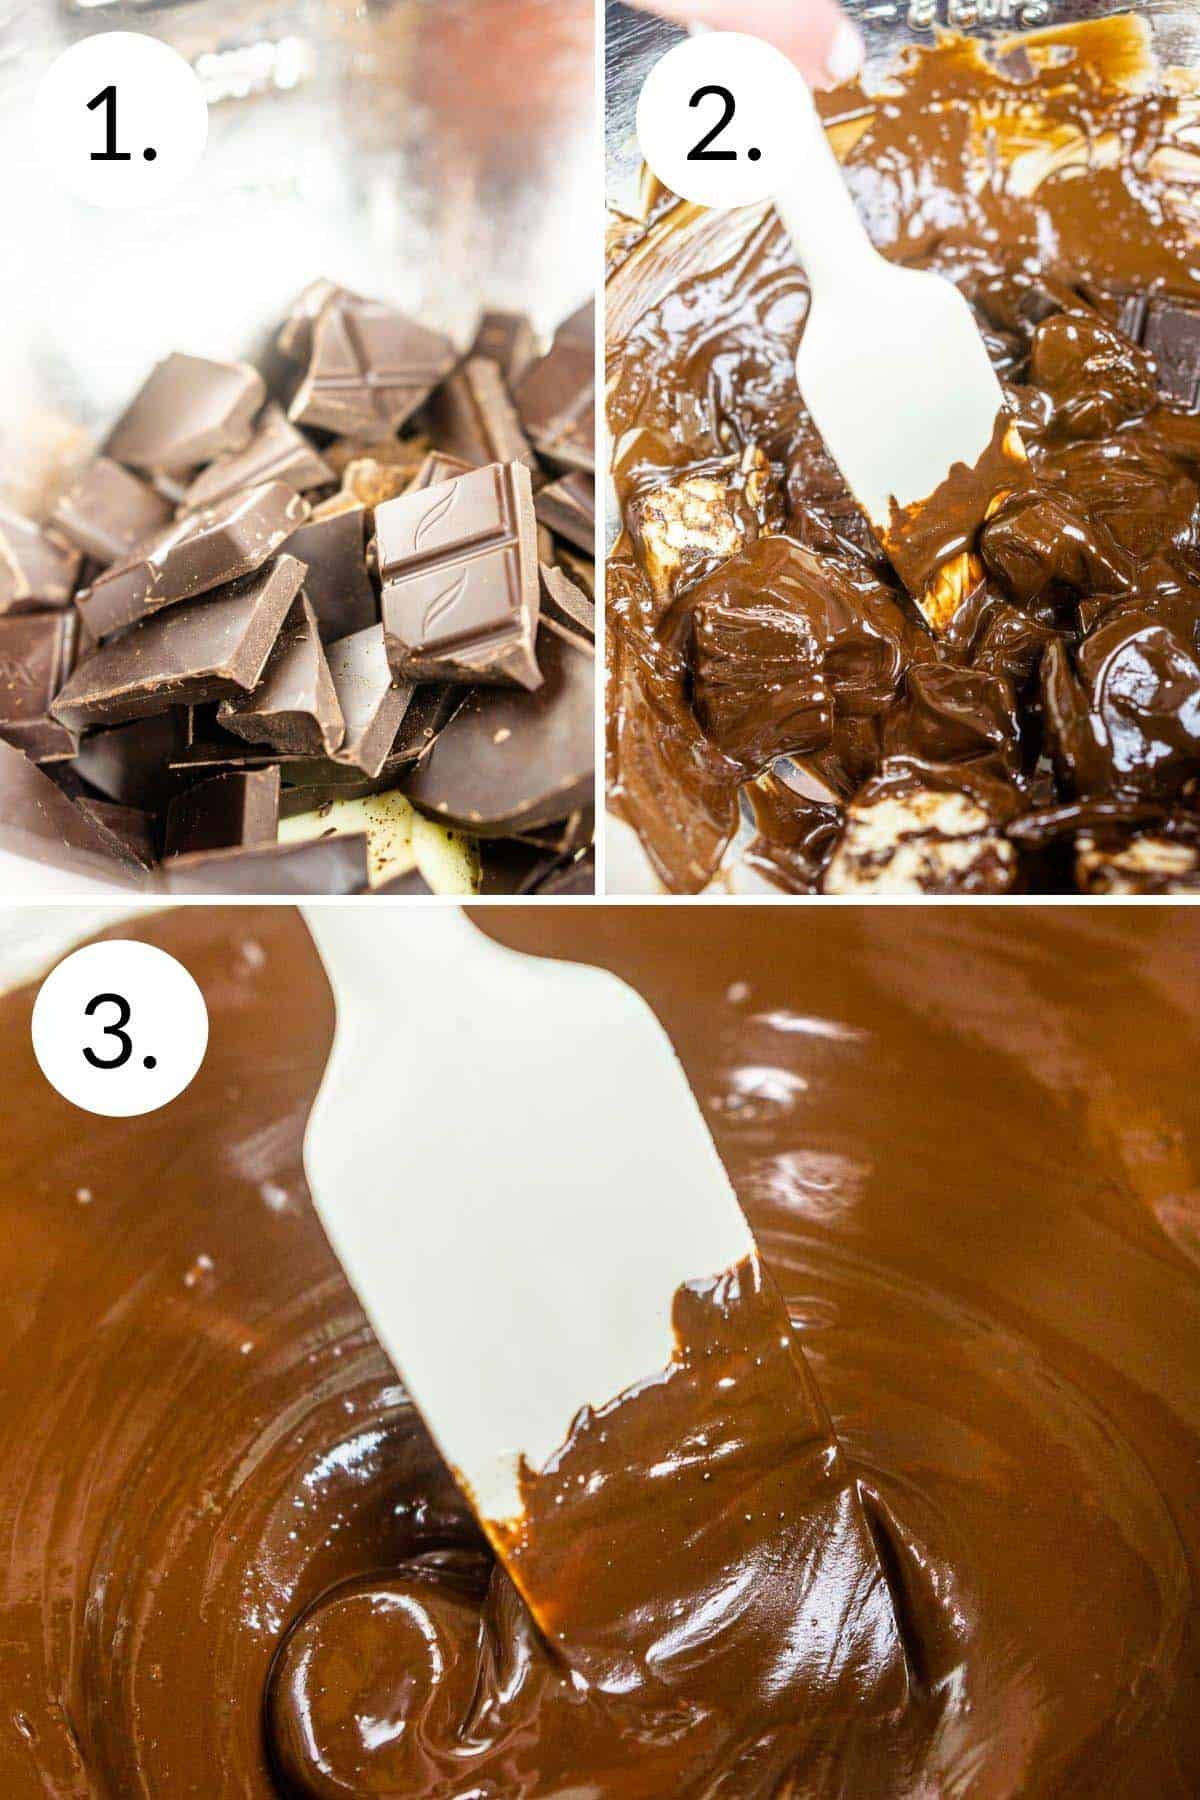 A collage showing the process of melting chocolate over a pot of simmering water until it melts and turns smooth.